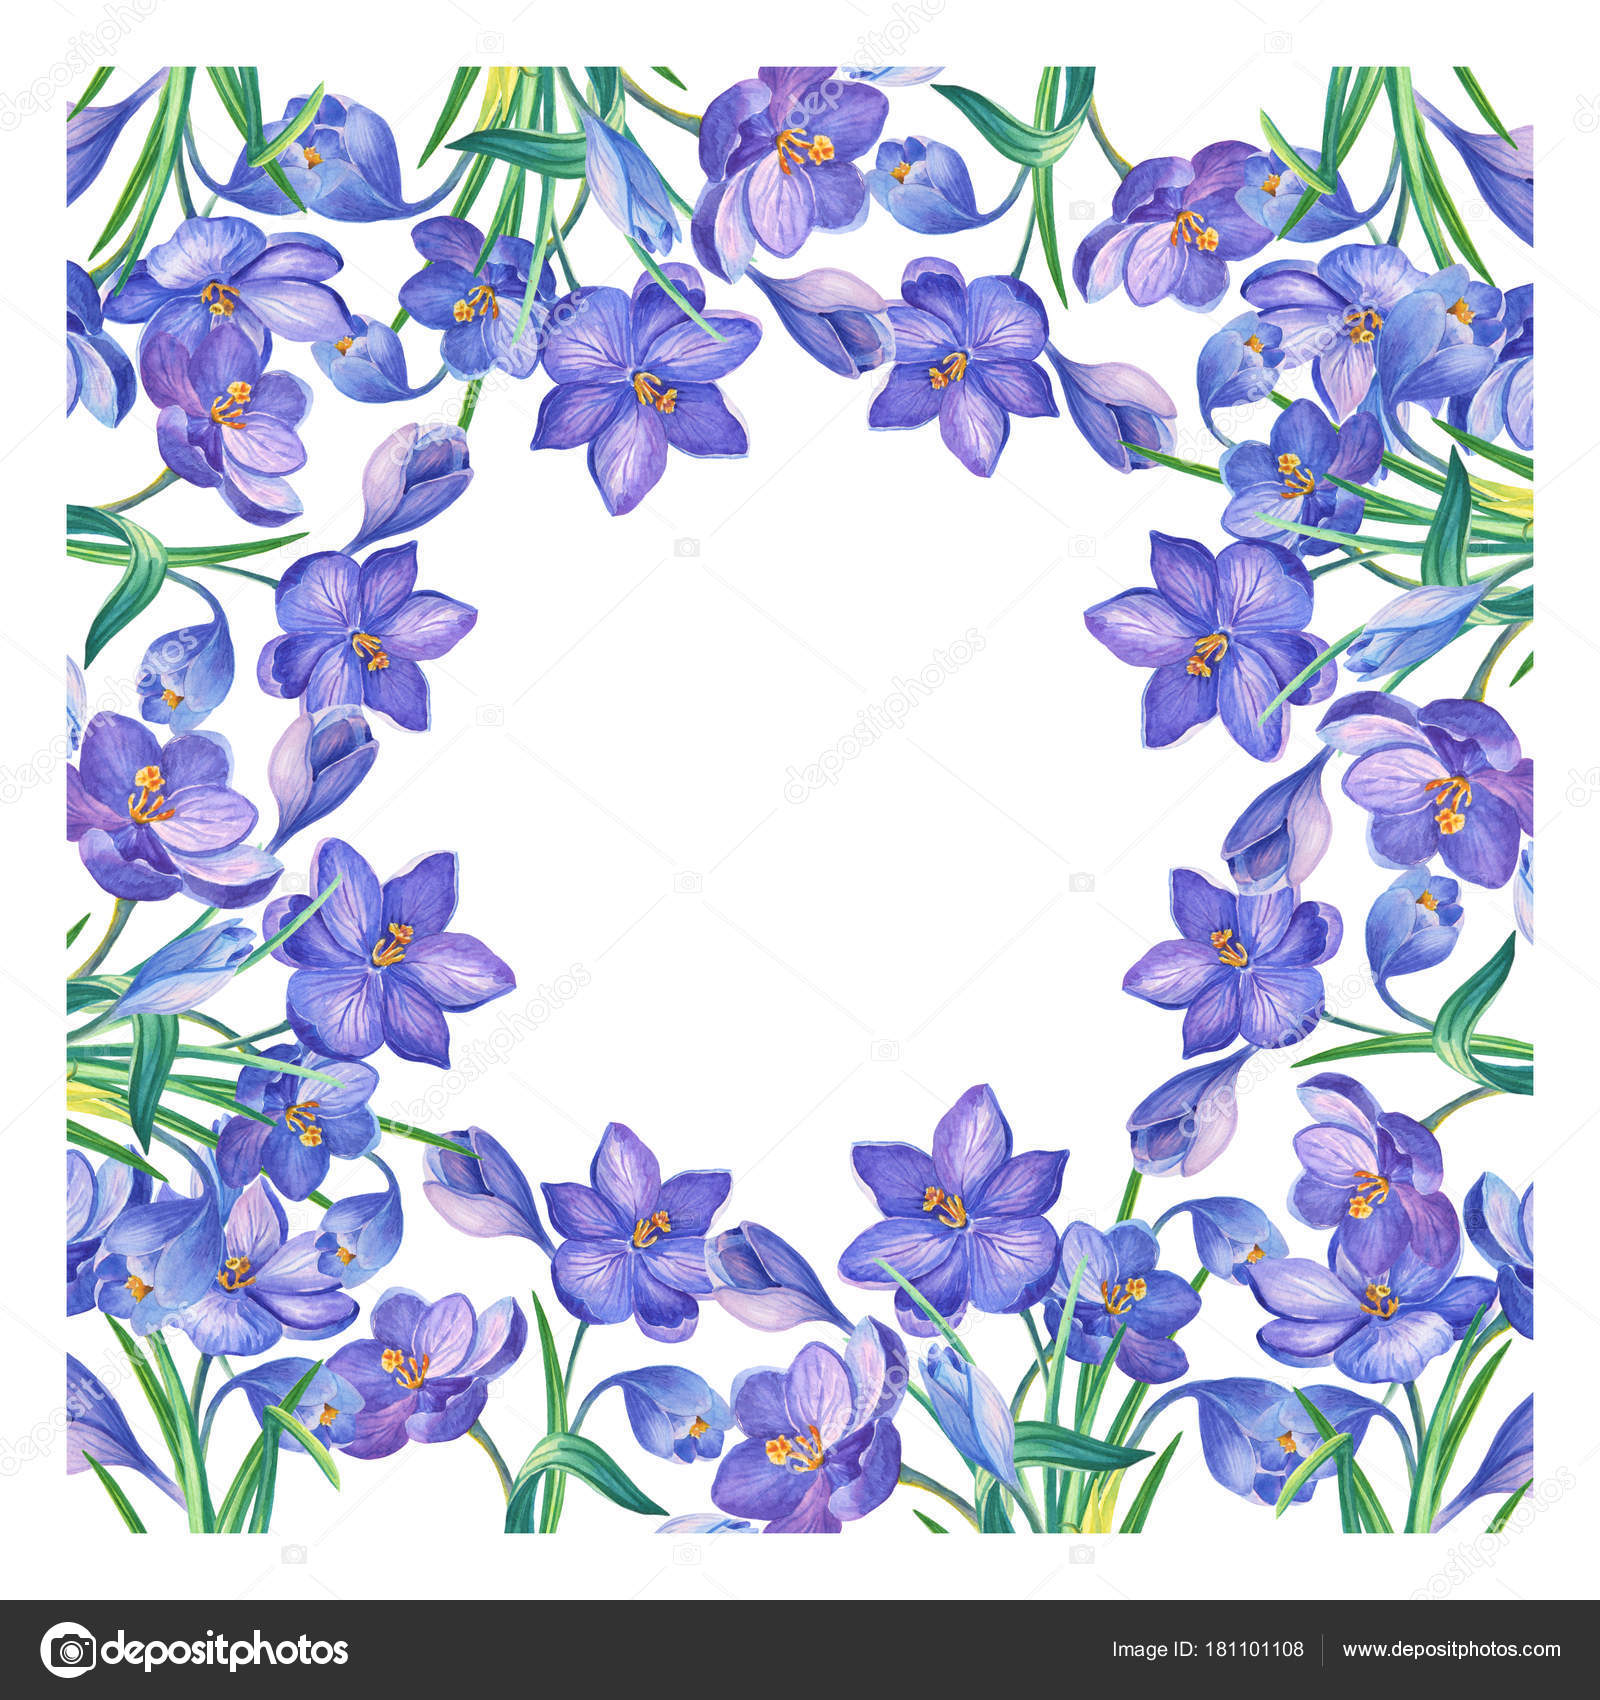 Frame watercolor illustration crocus saffron white background watercolor illustration with crocus or saffron on a white backgrounduquet of purple flowersn be used as greeting cards wedding invitations birthday izmirmasajfo